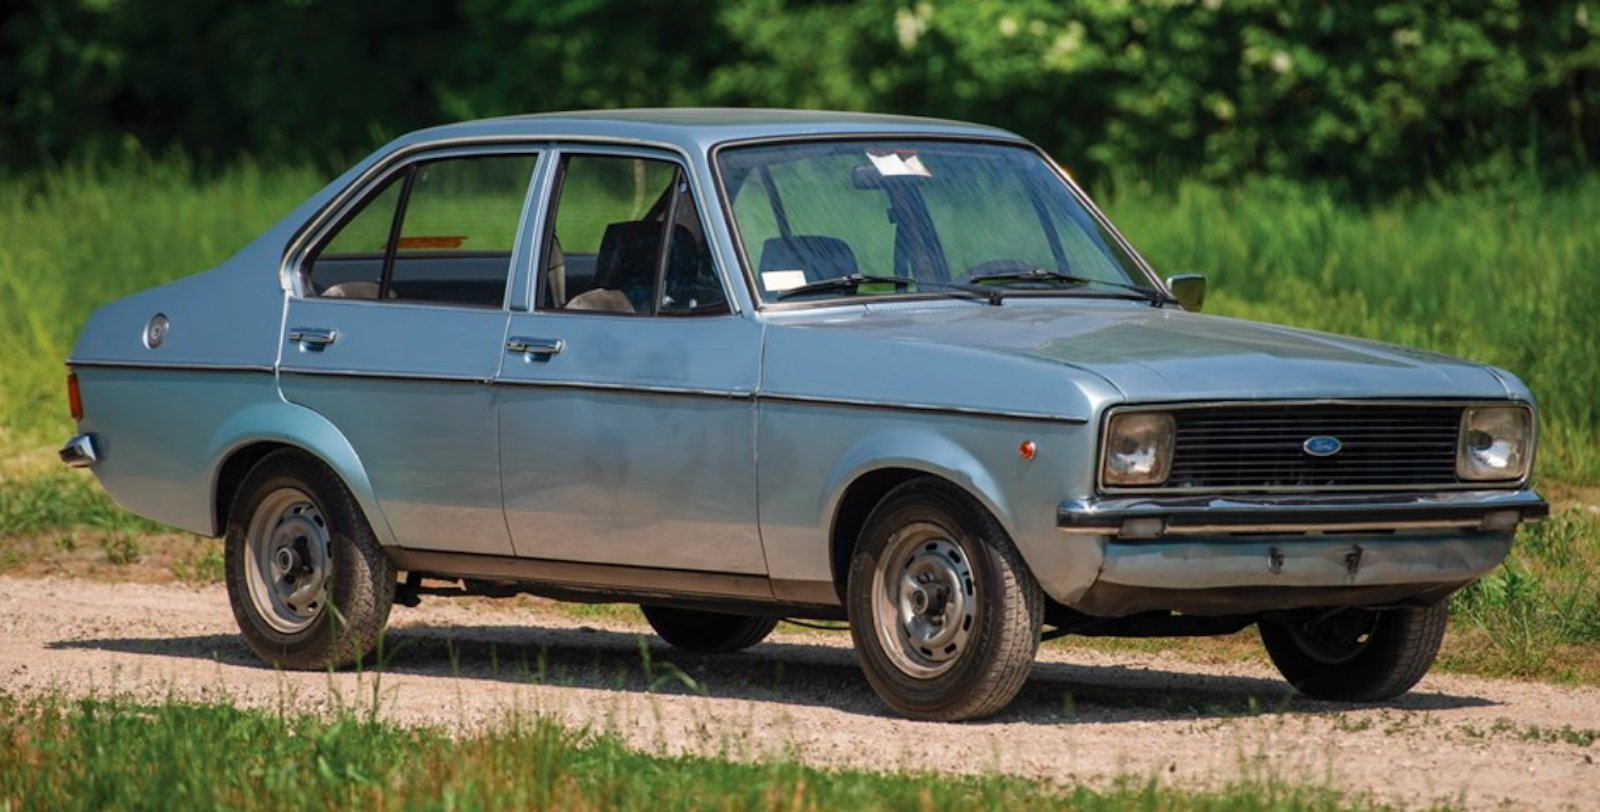 Pope John Paul II's 1976 Ford Escort is Heading to Auction